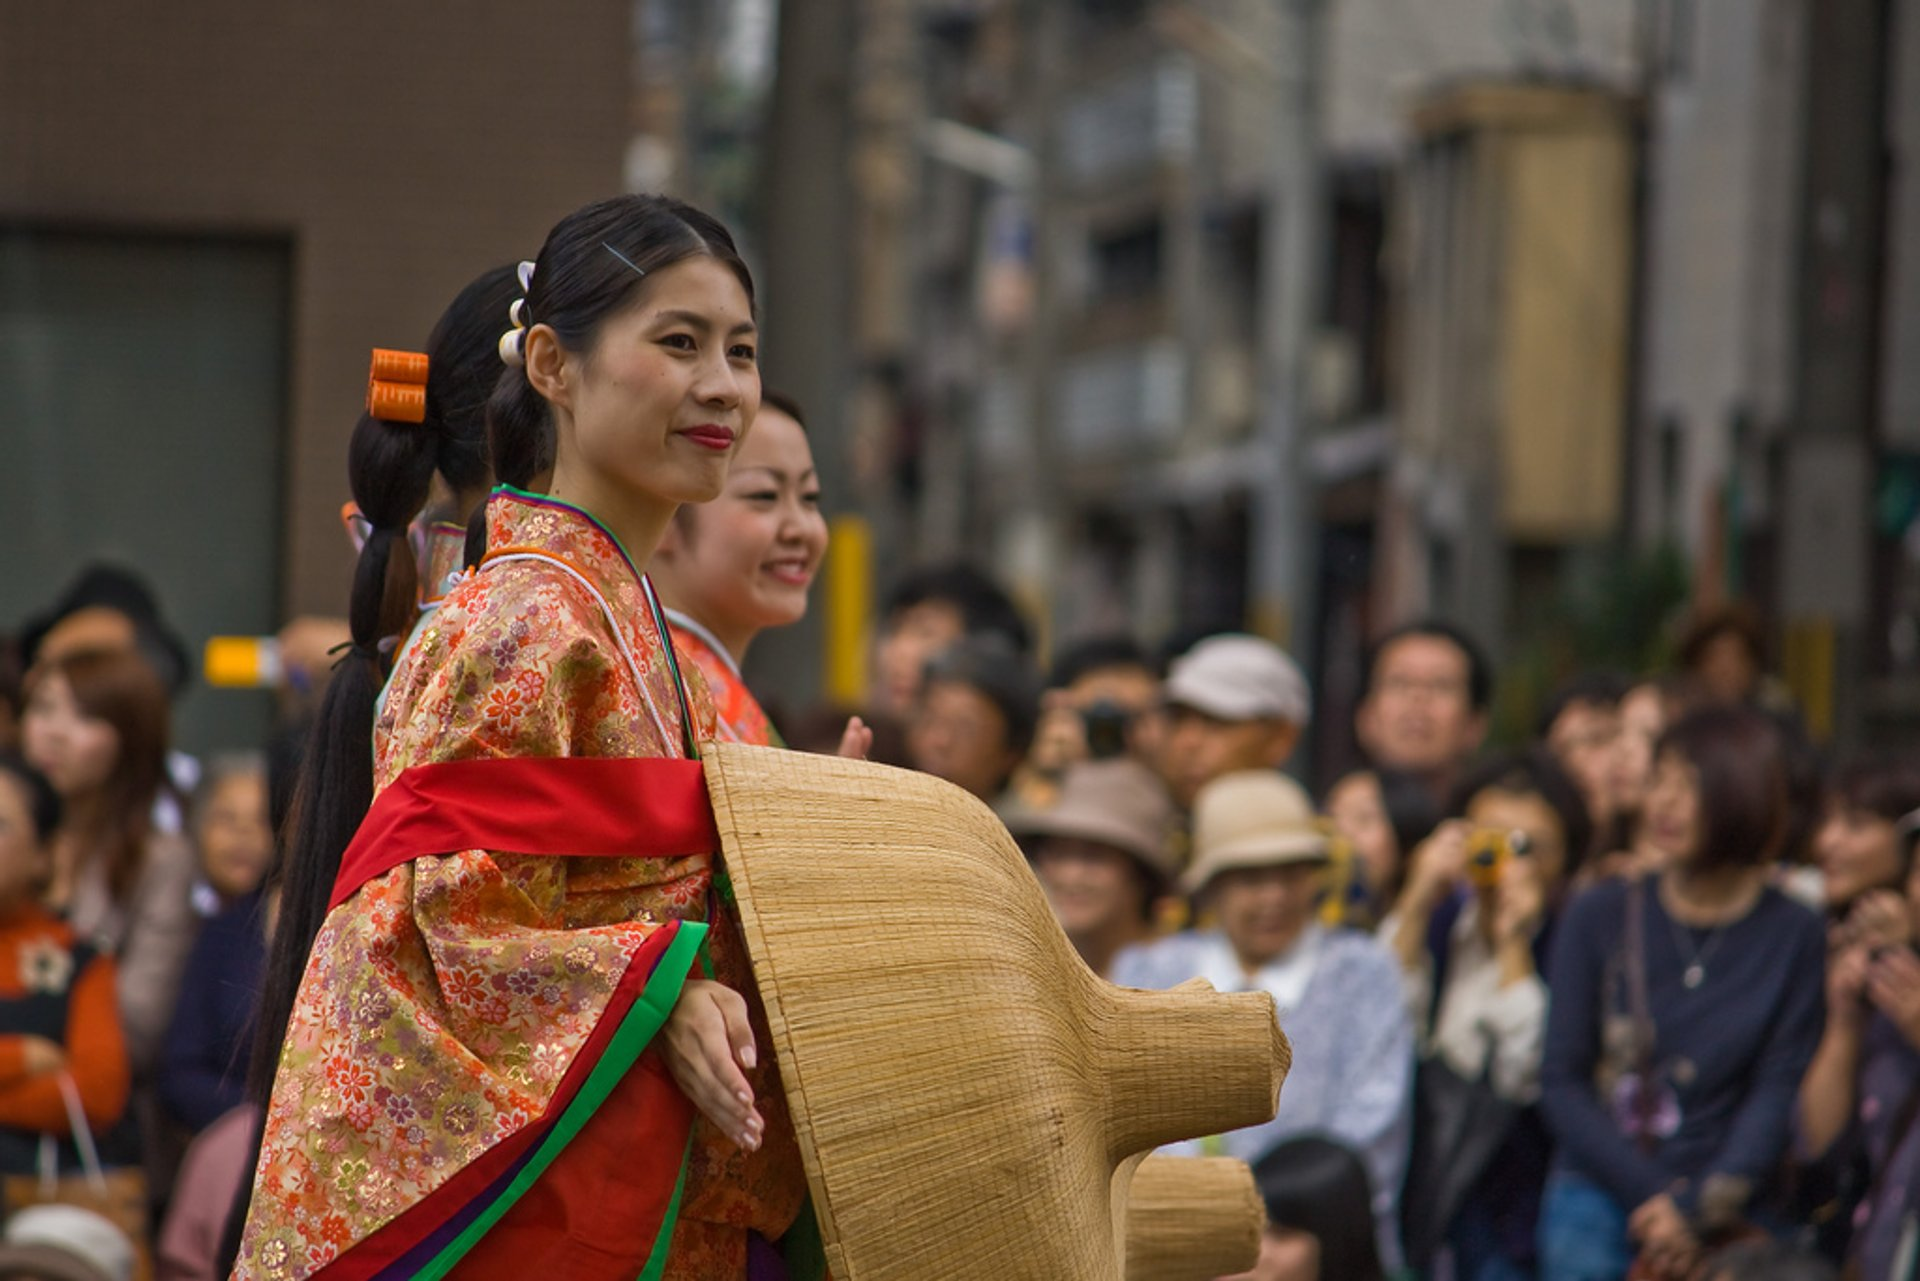 Best time for Jidai Matsuri (Festival) in Kyoto